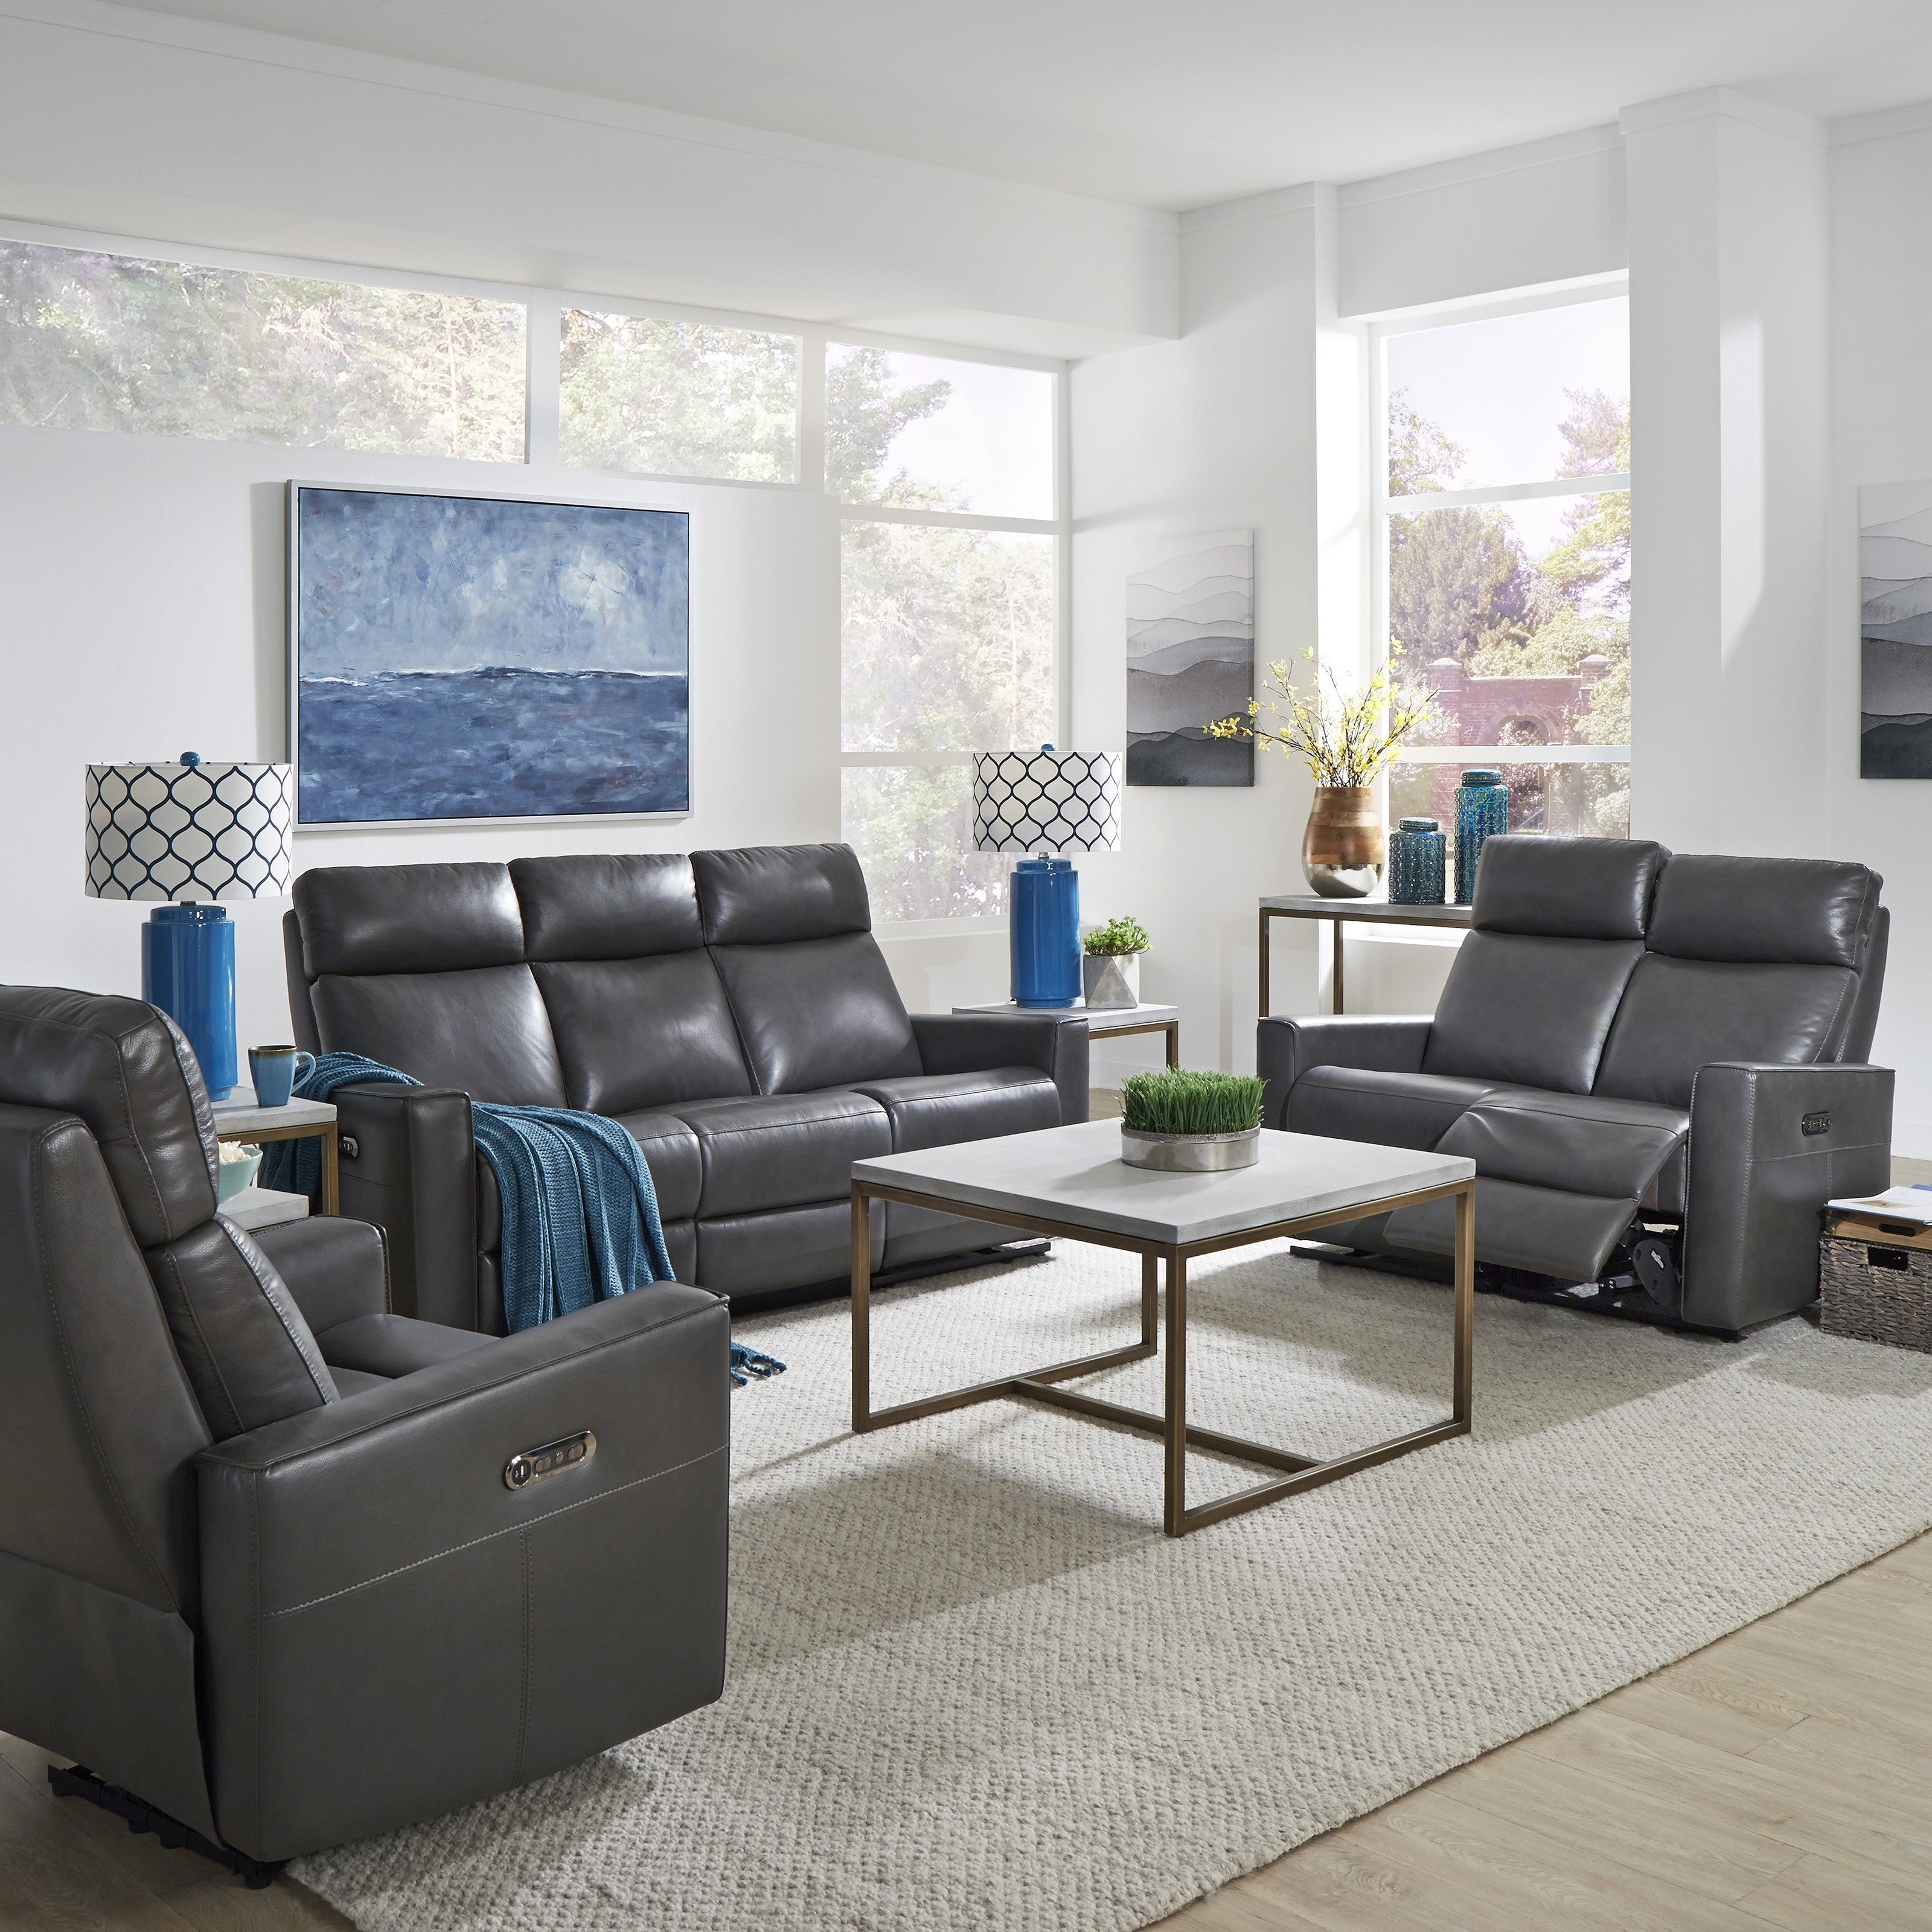 Wondrous Home Styles By Flexsteel Nuovo Leather Power Reclining Sofa Loveseat And Recliner Set Of 3 Ibusinesslaw Wood Chair Design Ideas Ibusinesslaworg